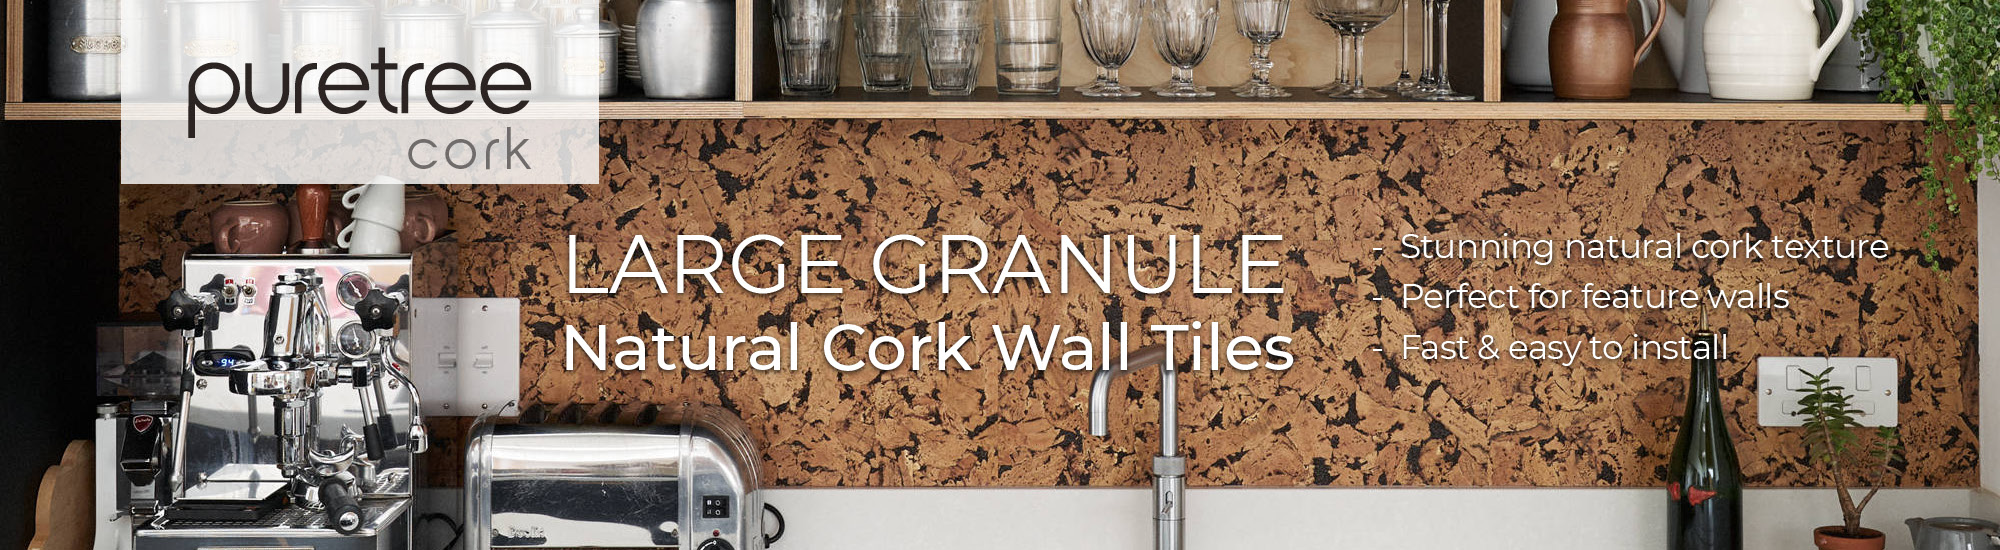 Large Granule Cork Wall Tiles - Banner